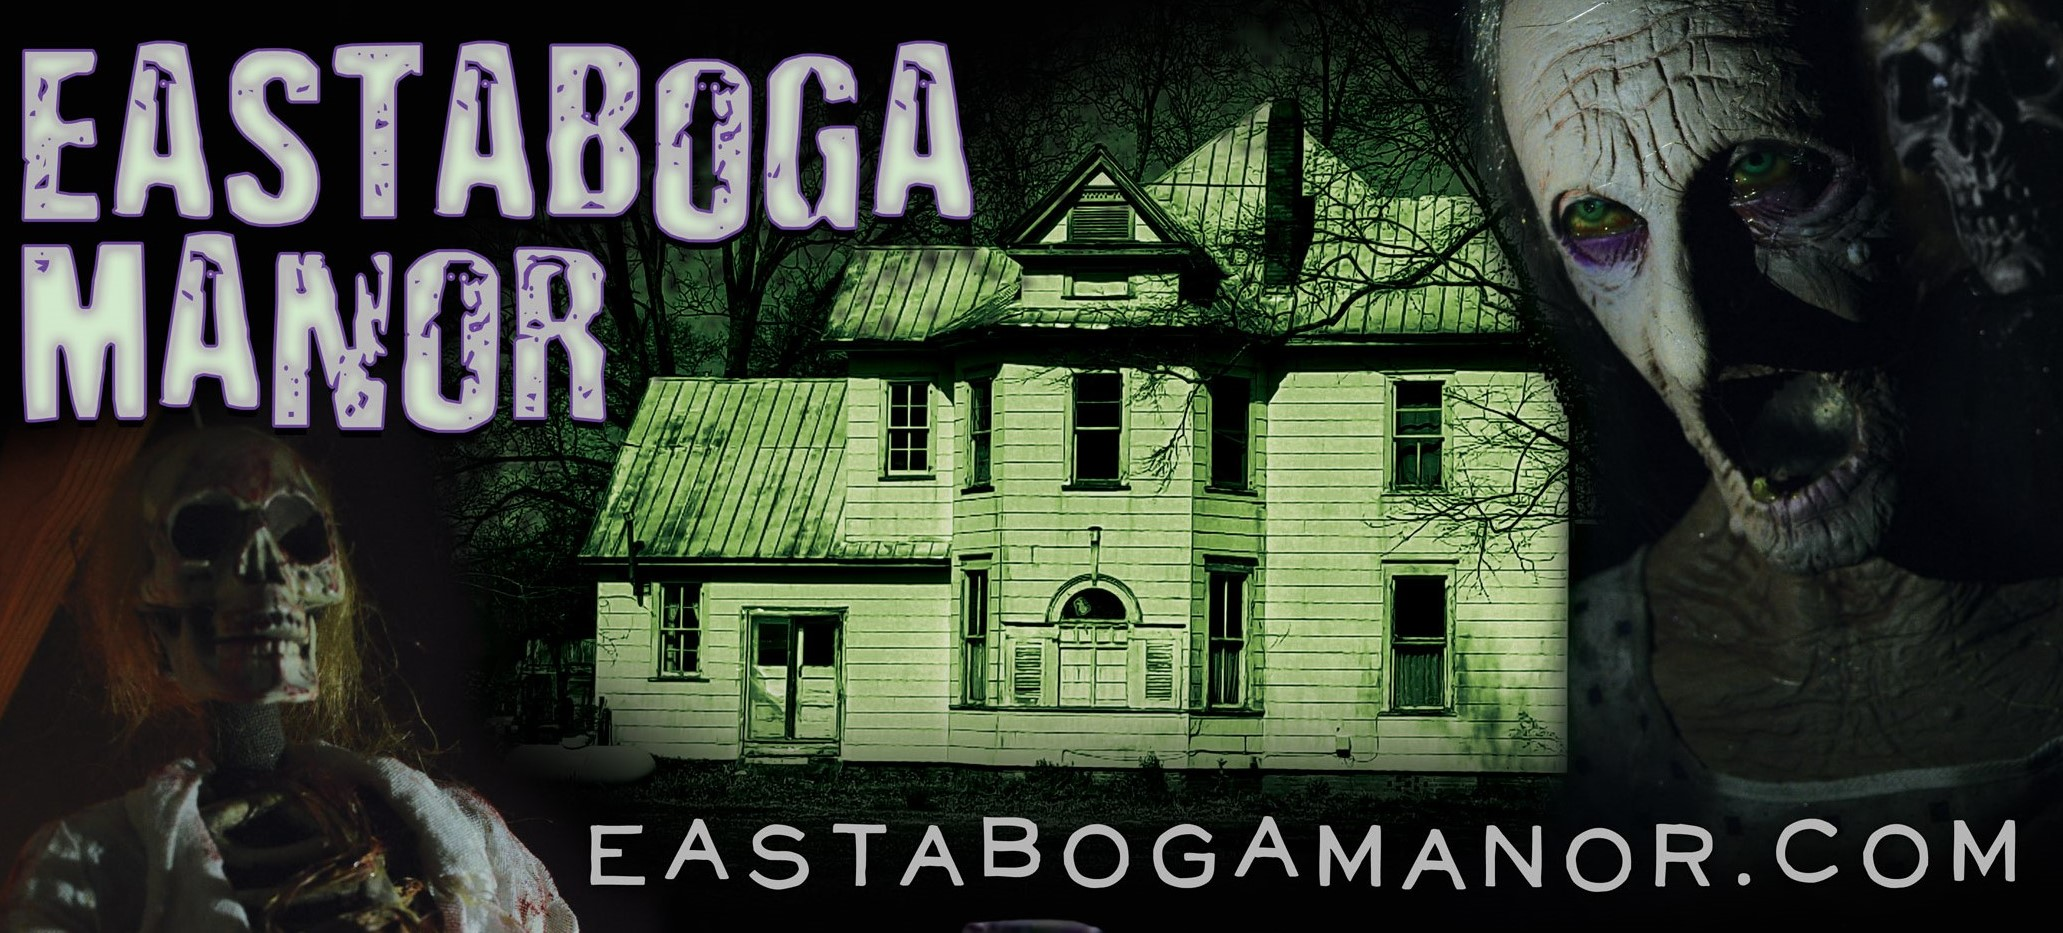 EastabogaManor Billboard.jpg